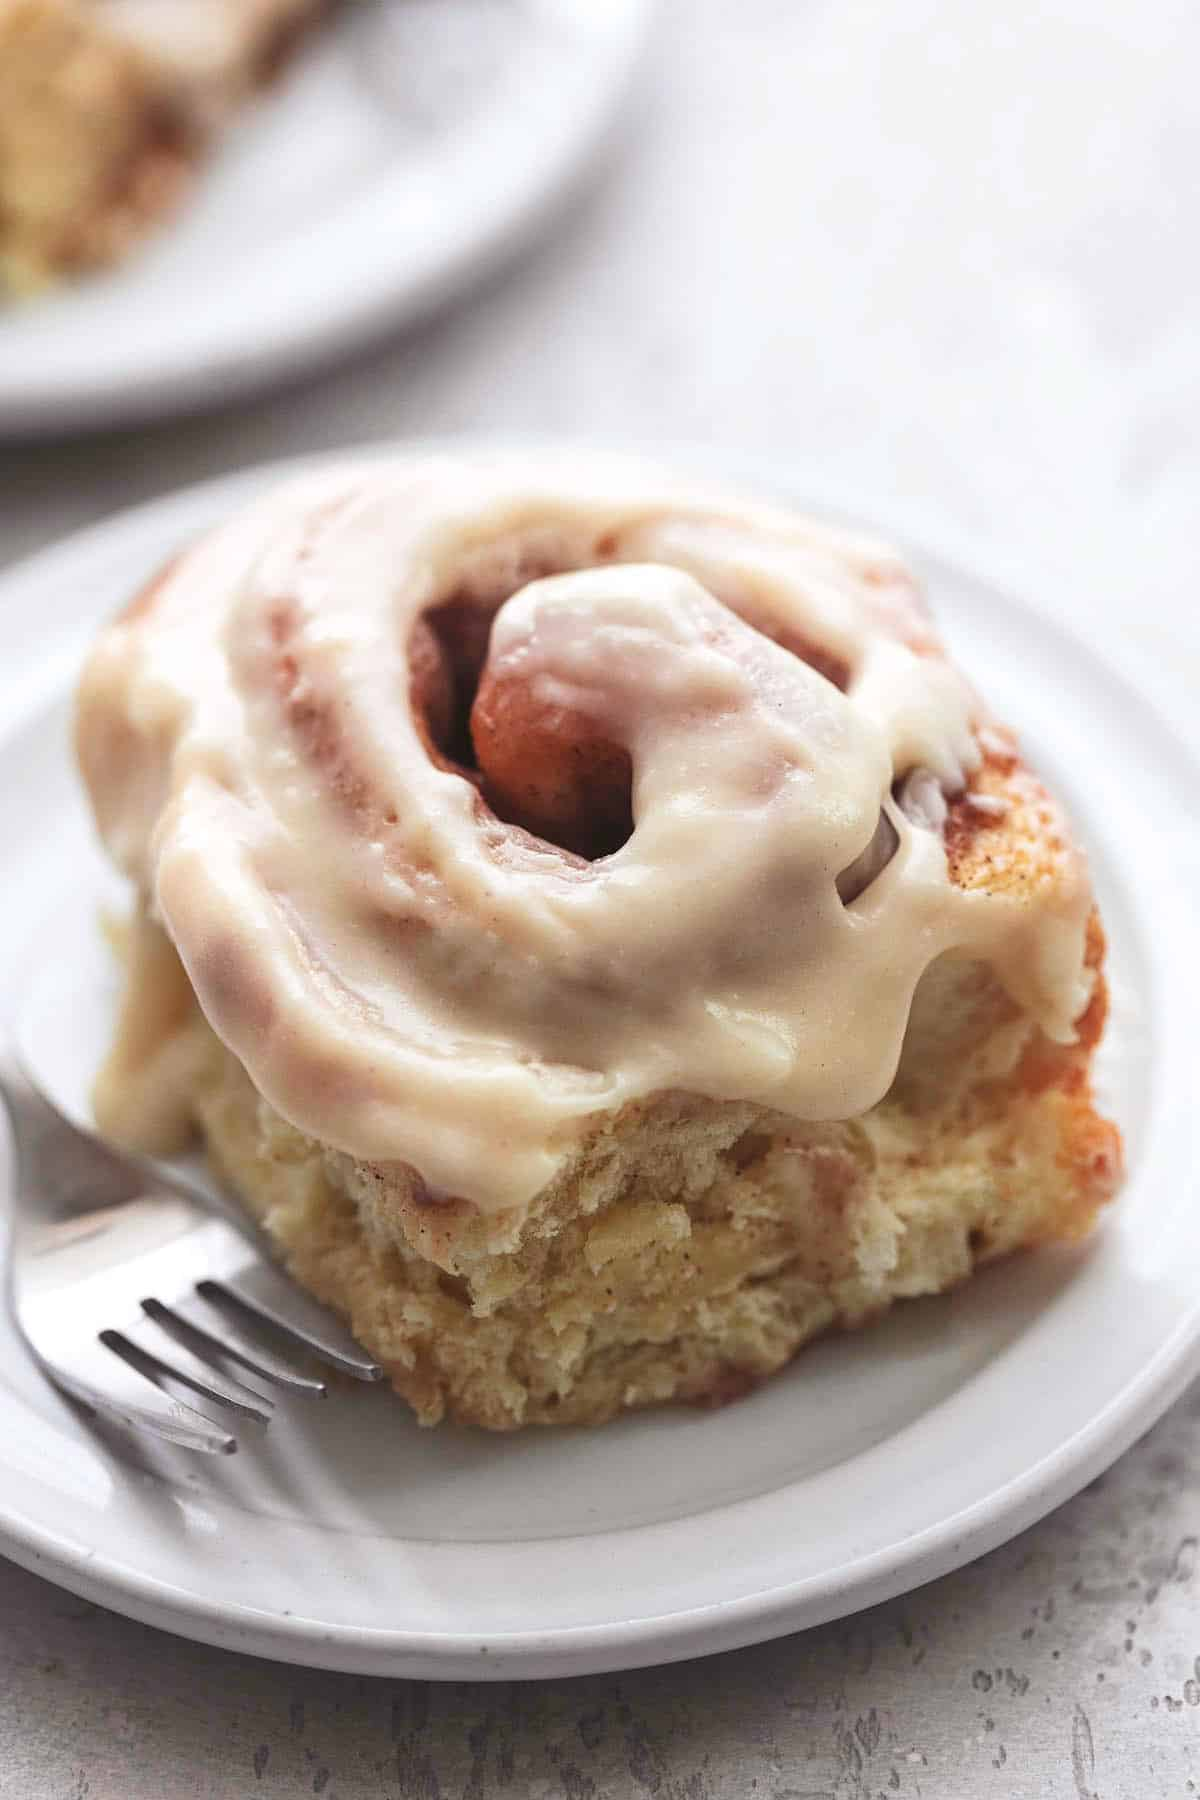 cinnamon roll with white icing on white plate